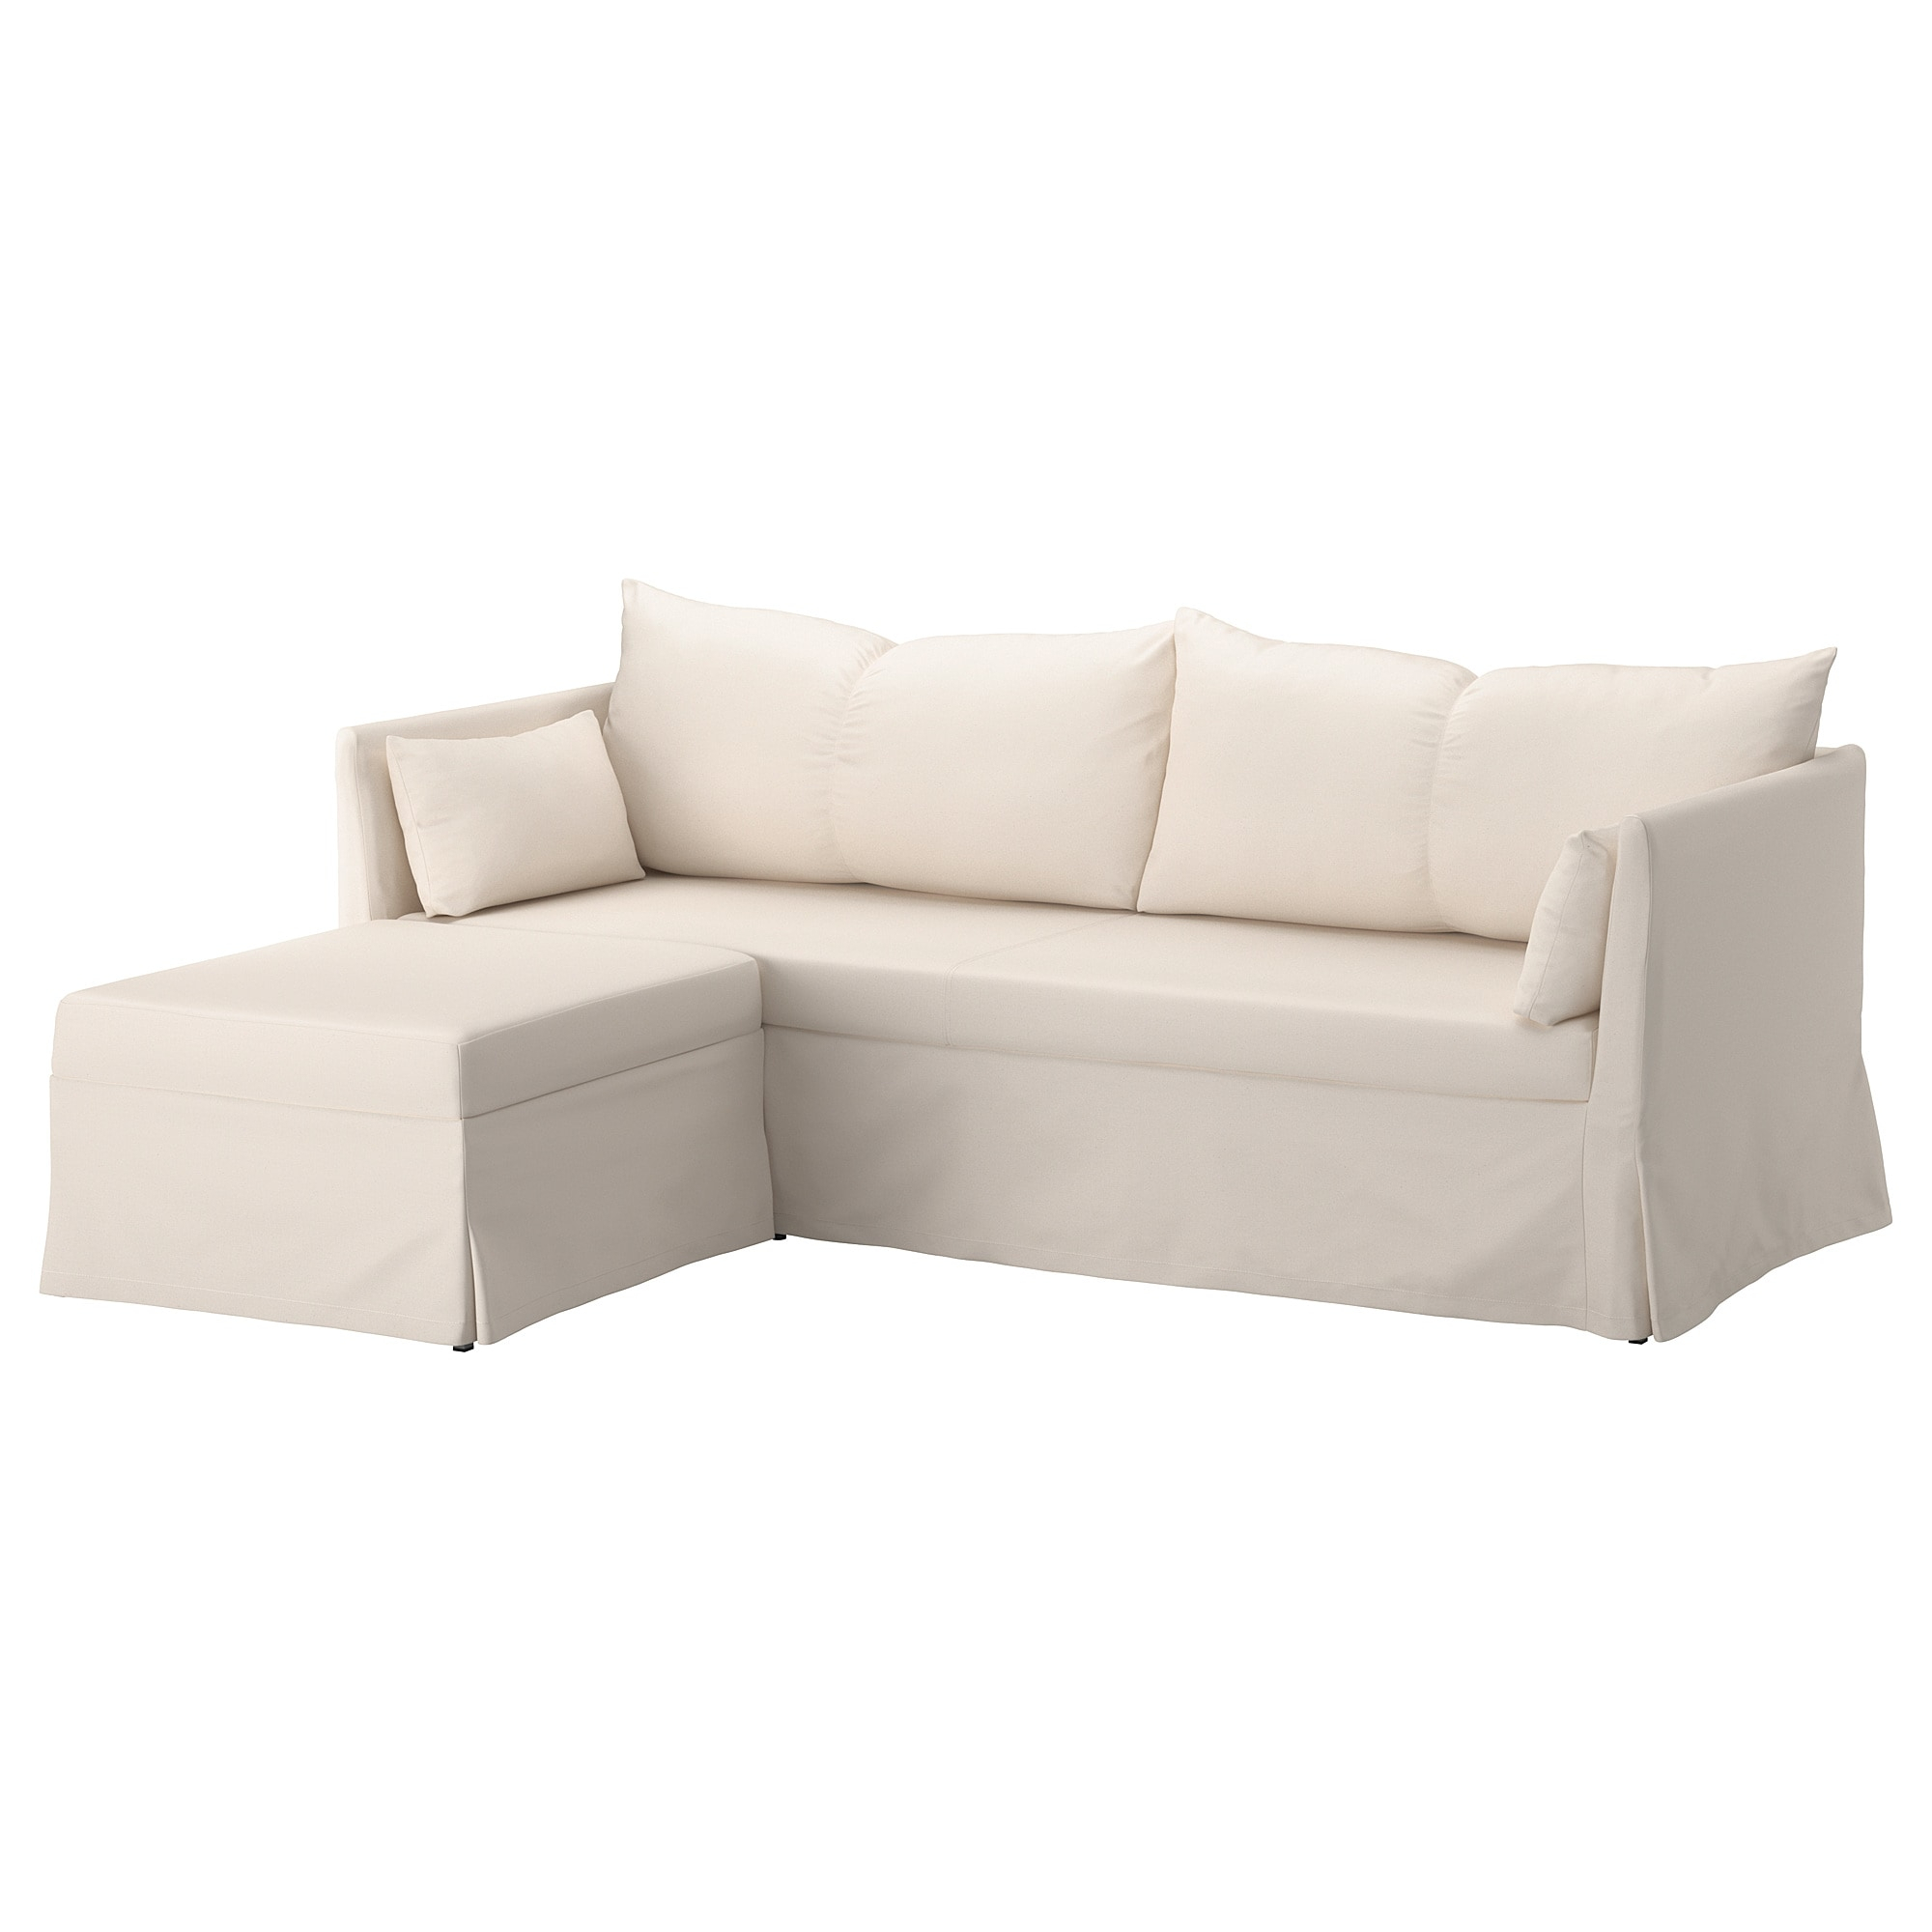 Sandbacken Corner Sofa Bed Ransta Natural – Ikea With London Optical Sofa Chairs (Image 17 of 20)